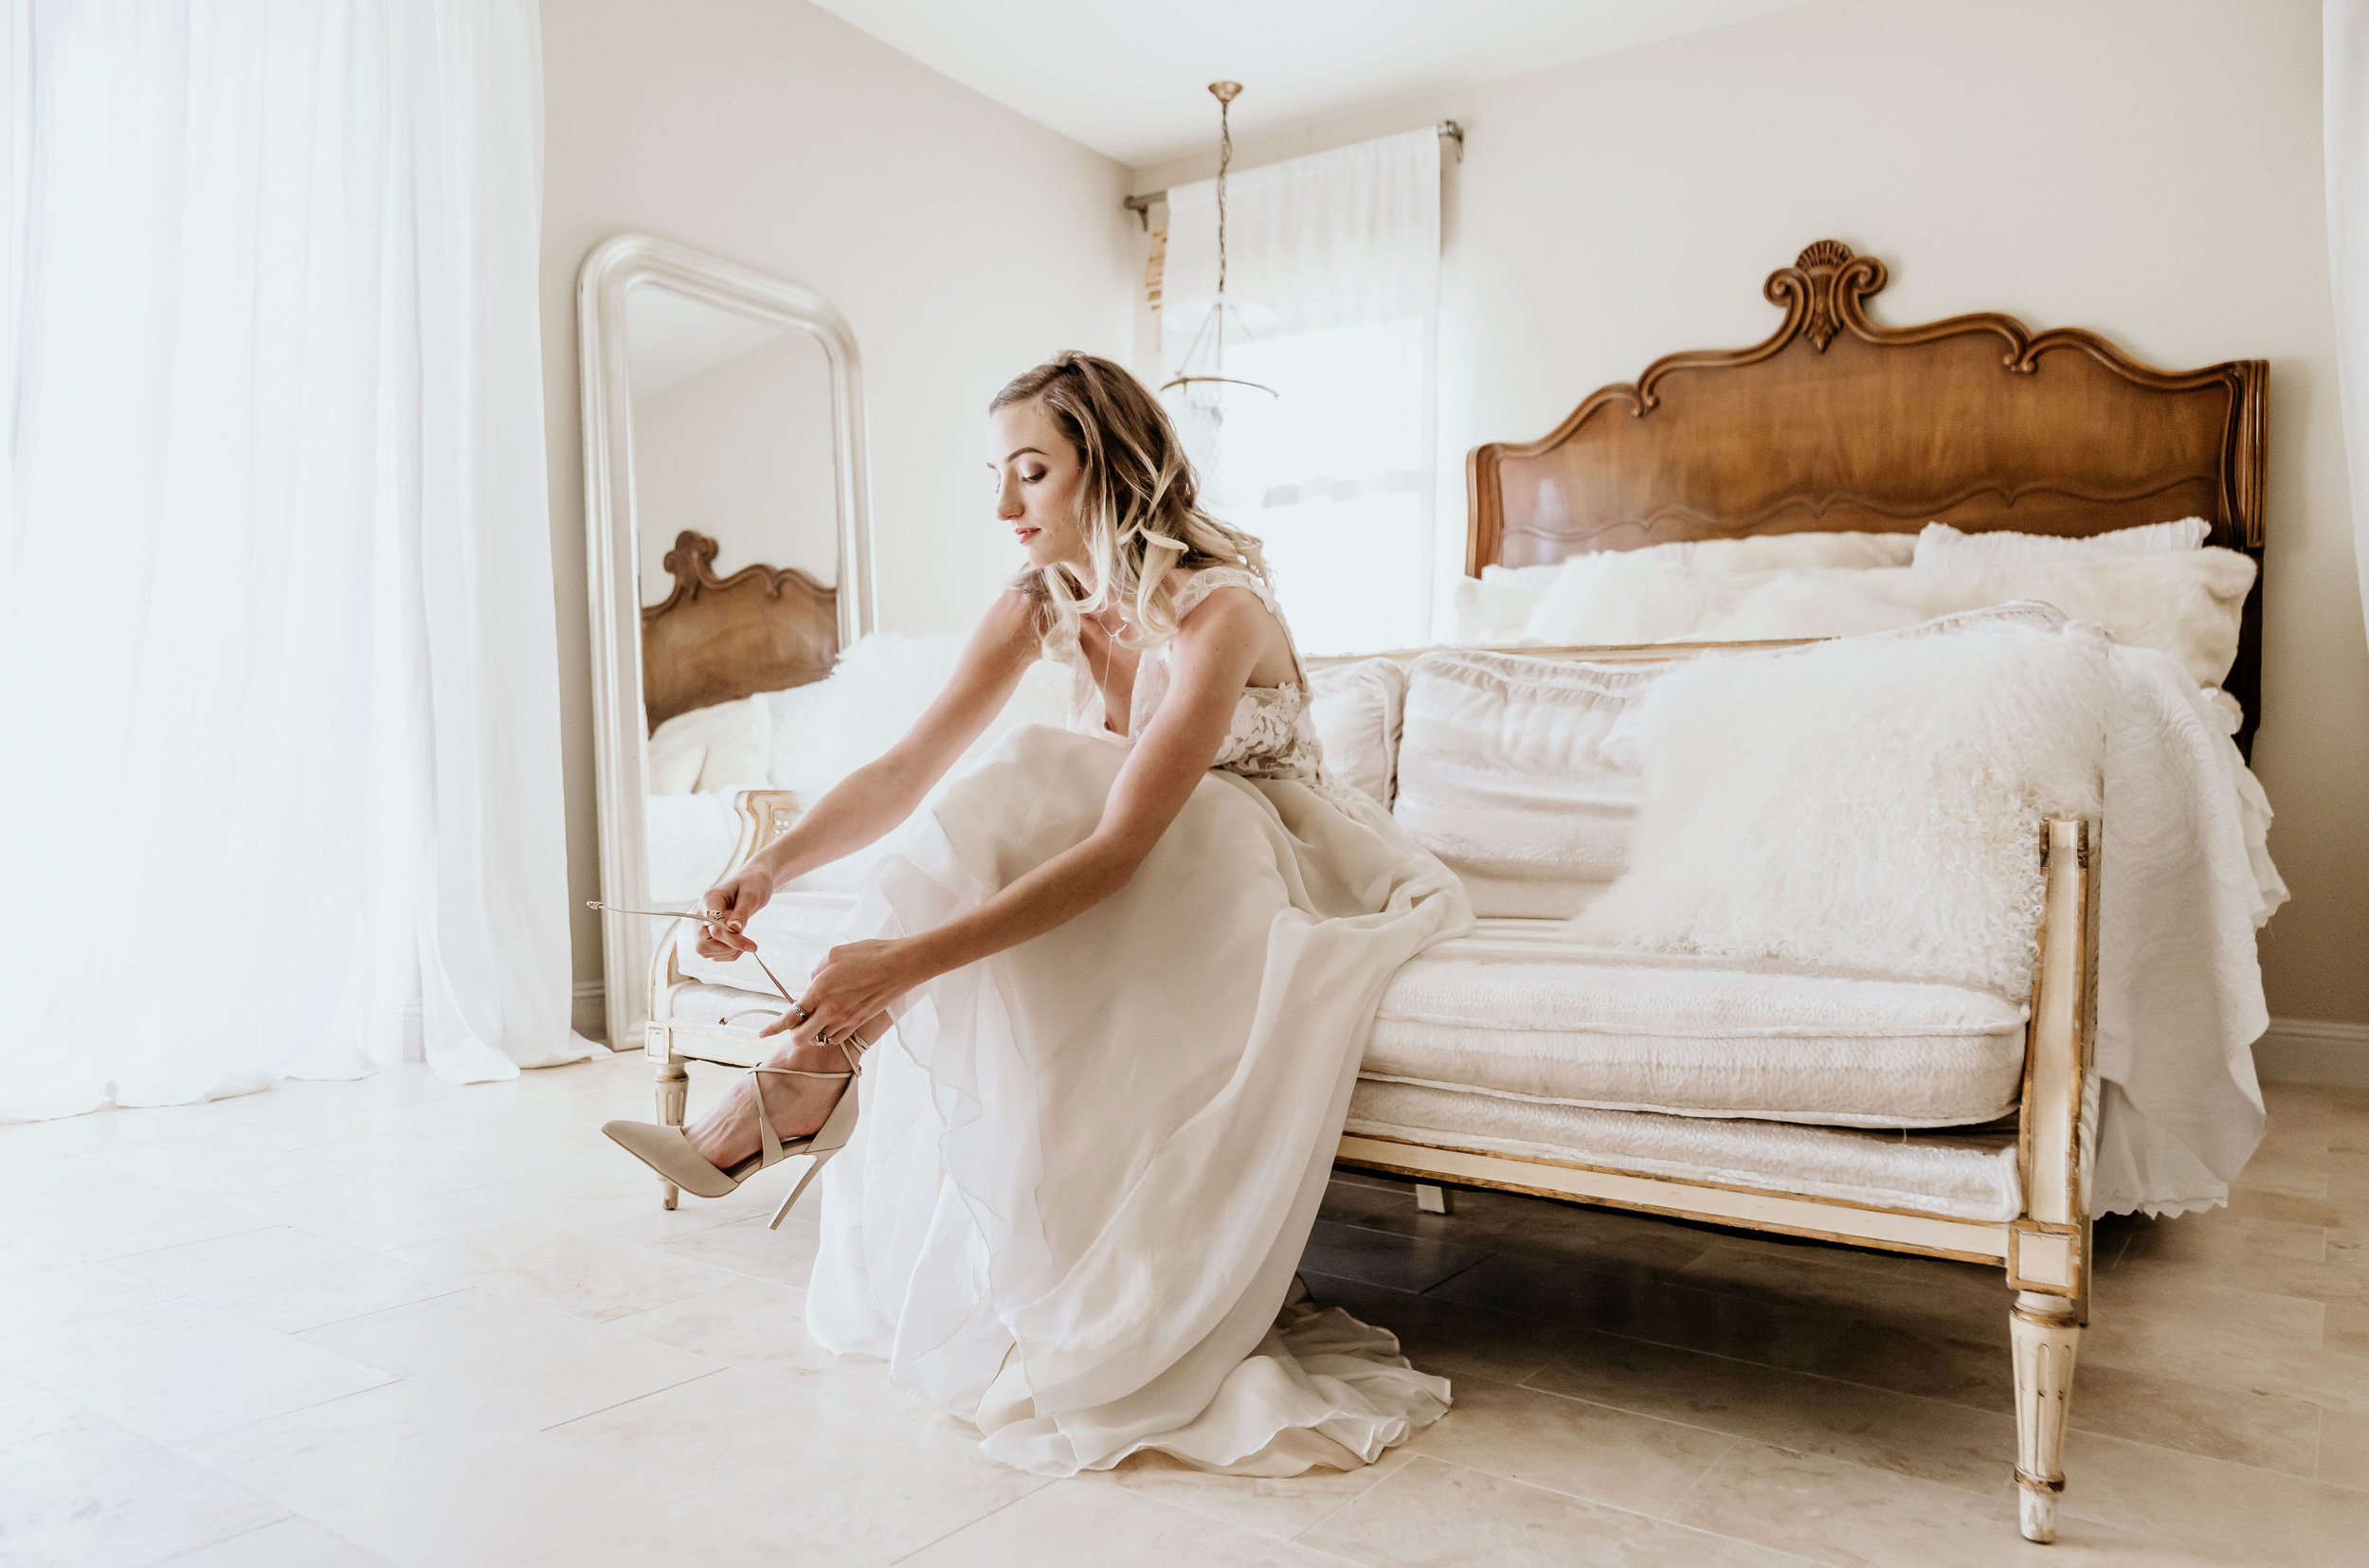 Alice in Wonderland bride in the bridal suite at Chateau Adare in Murrieta putting on her shoes. She is sitting on a vintage couch from Birdie in a Barn in Murrieta.